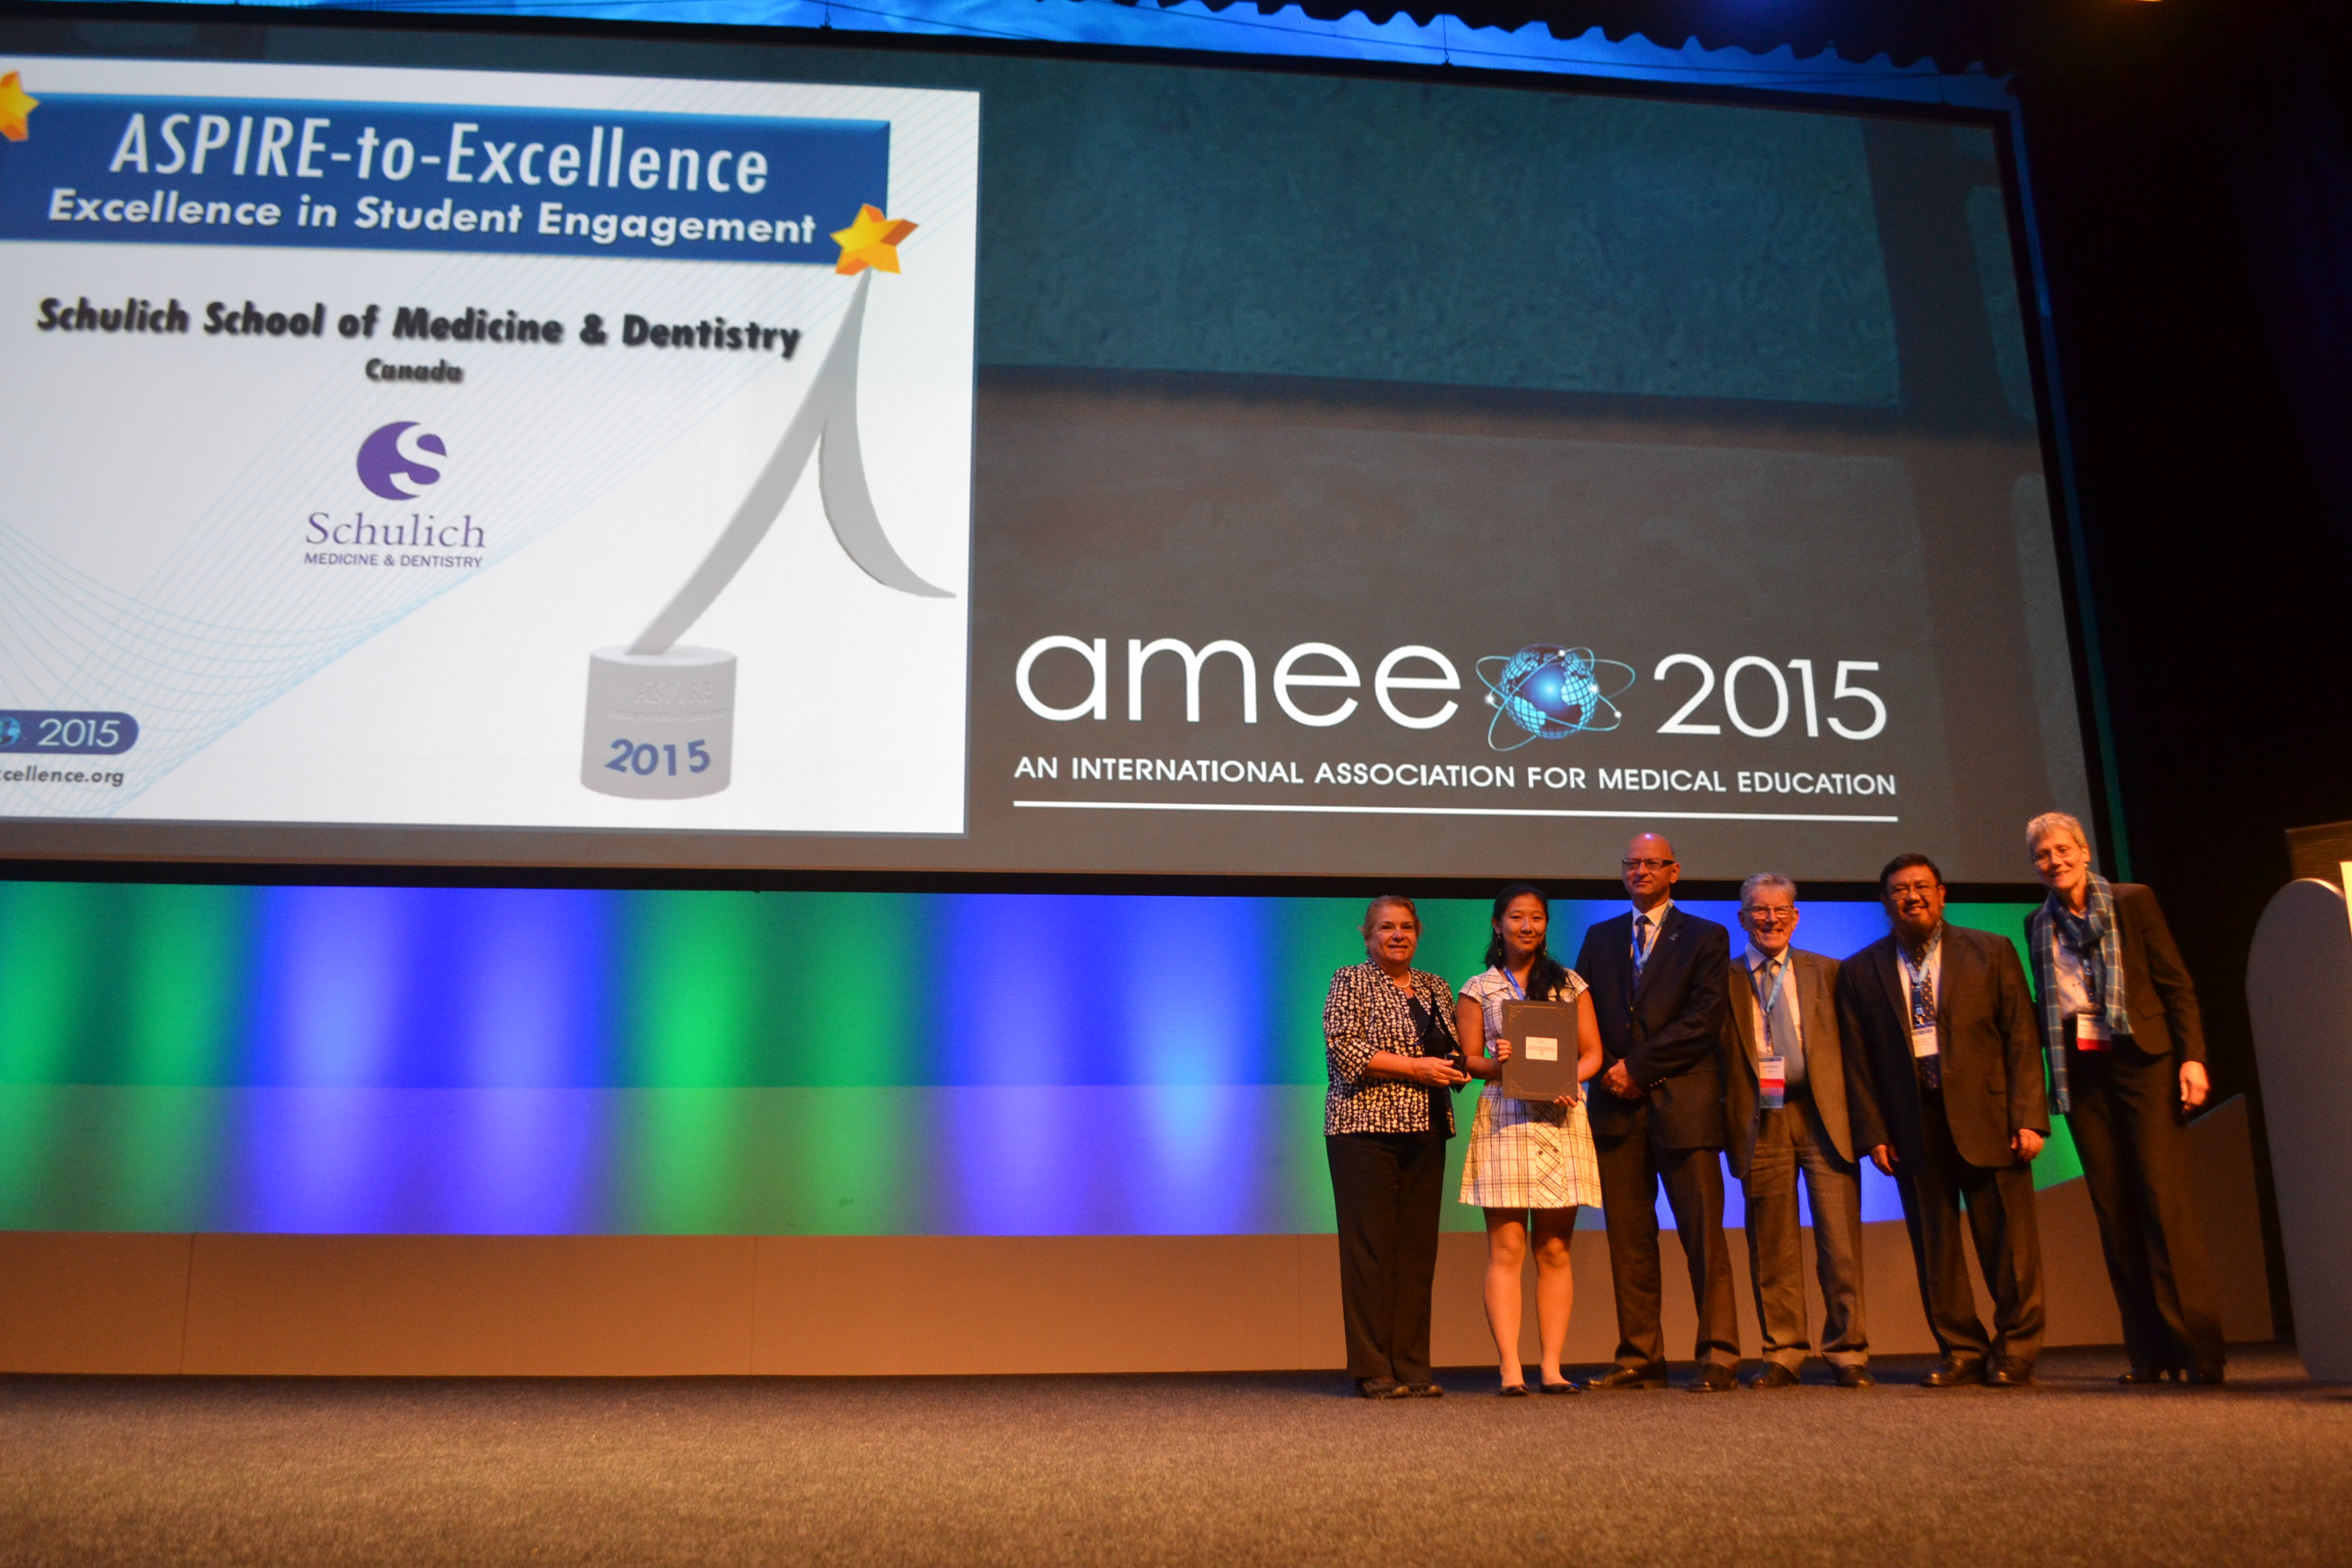 AMEE 2015 - ASPIRE-to-Excellence Student Awards - 031_Schulich.JPG